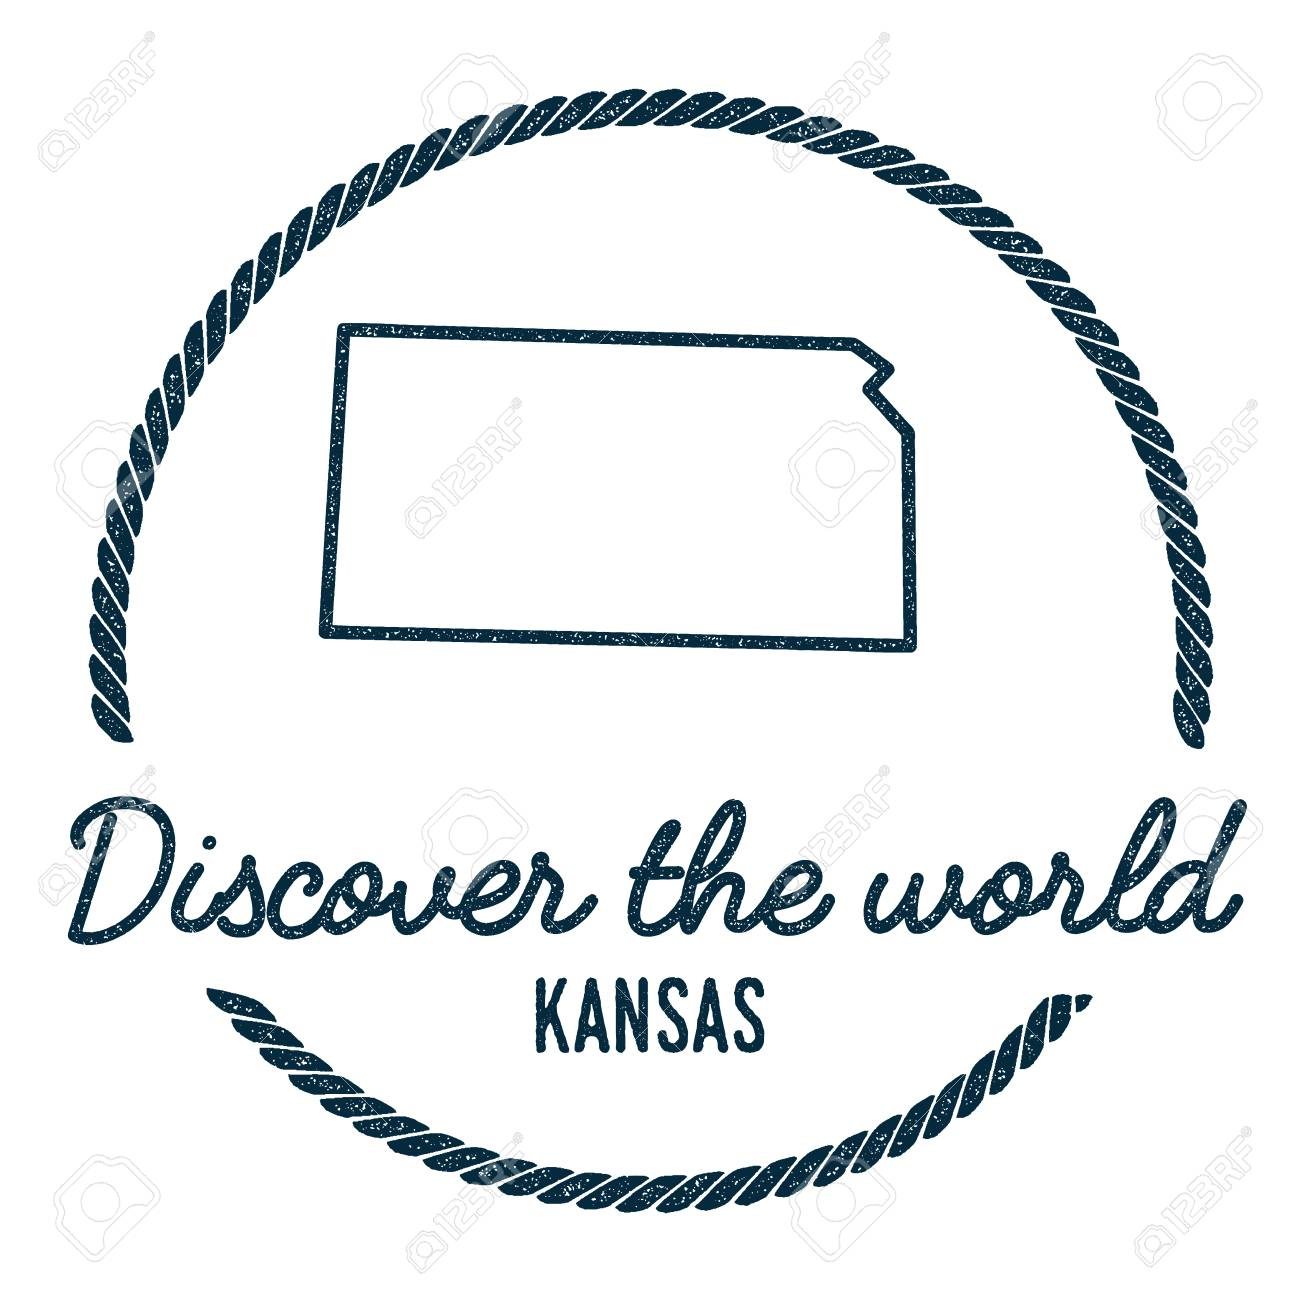 Kansas Map Outline Vintage Discover The World Rubber Stamp With